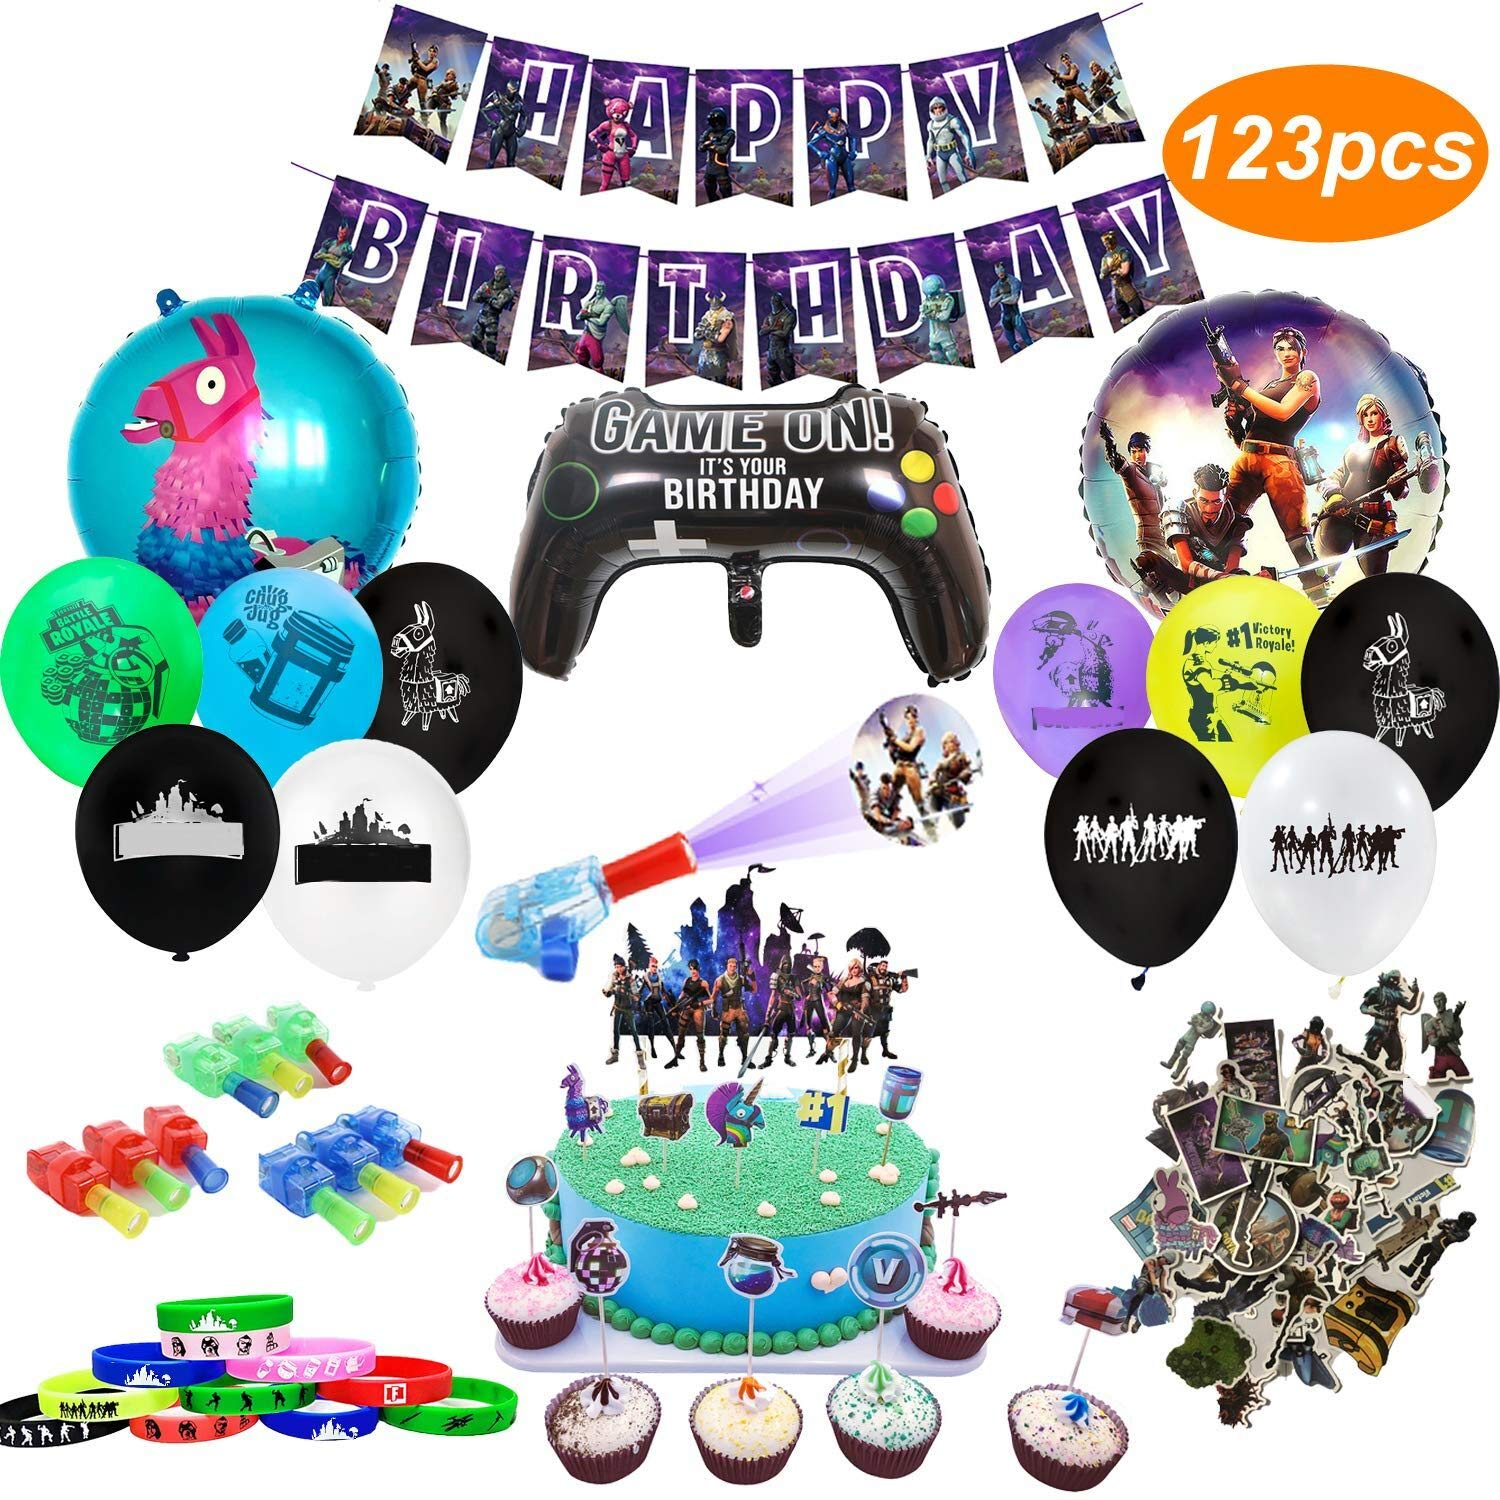 123pcs Gaming Theme Party Decorations Banner,Bracelets,Finger Lights,Stickers,Cake Toppers include Balloons Cupcake Toppers Birthday Party Supplies for Game Fans